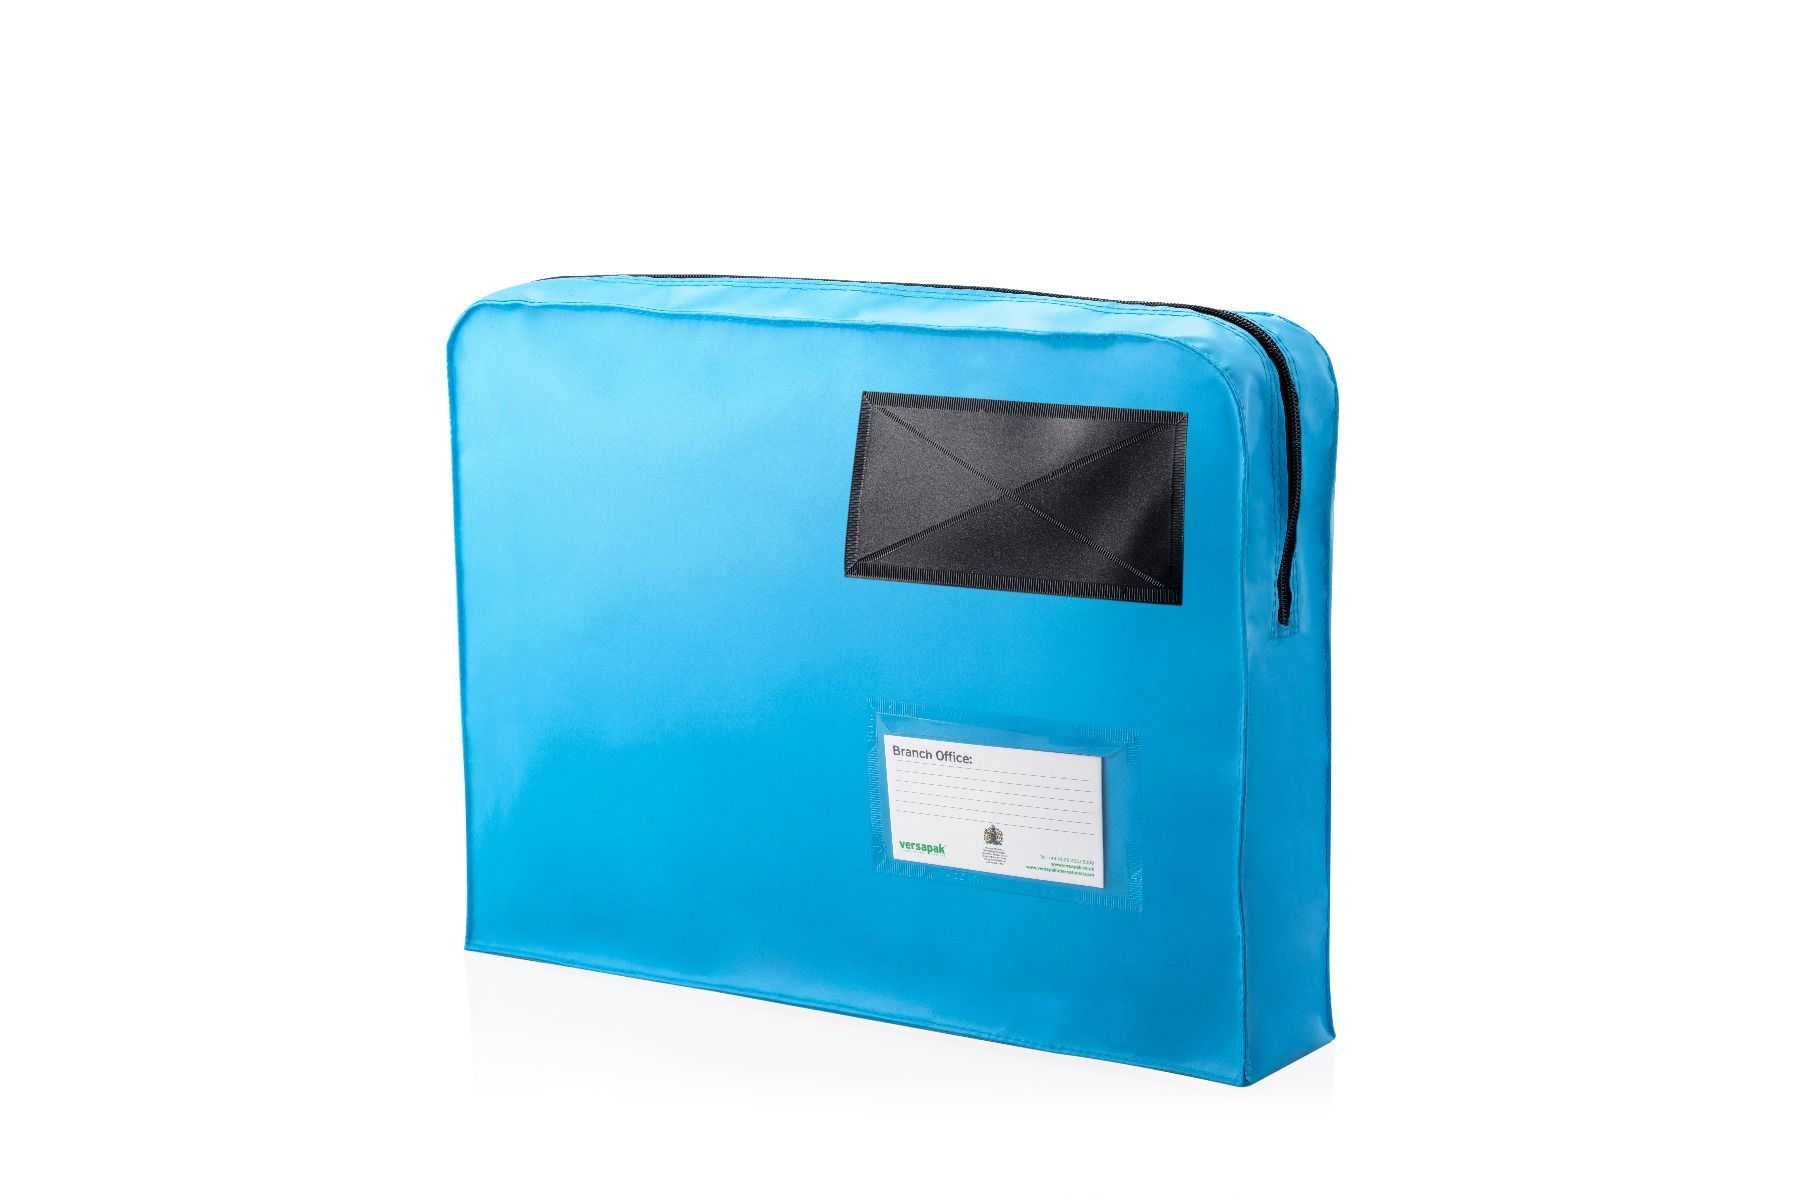 Medium Mailing Pouch - Antimicrobial Protection